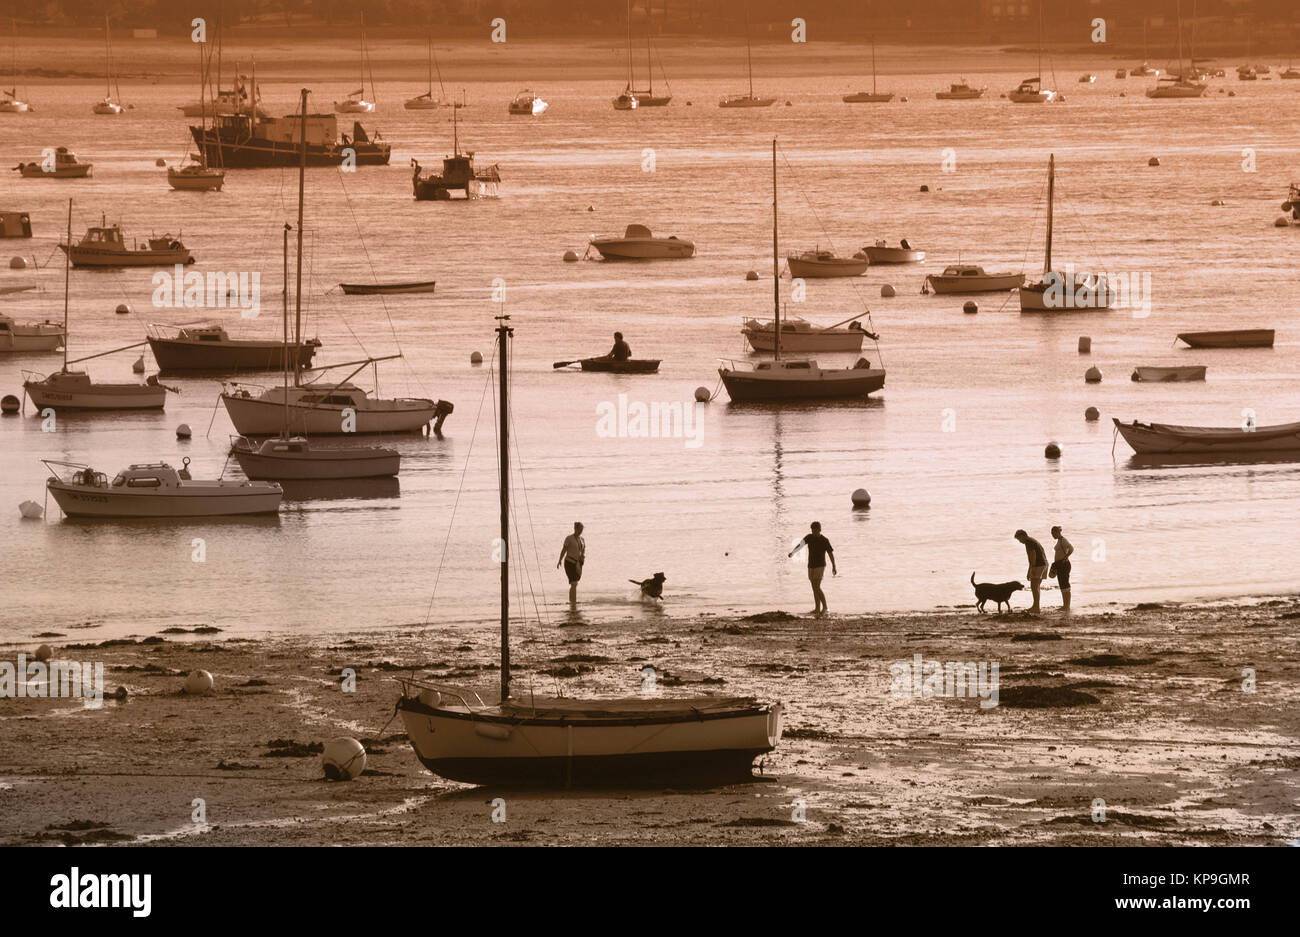 Family playing in the sea at low tide. St Malo (Saint Malo) is a port in Brittany in northwest France. - Stock Image